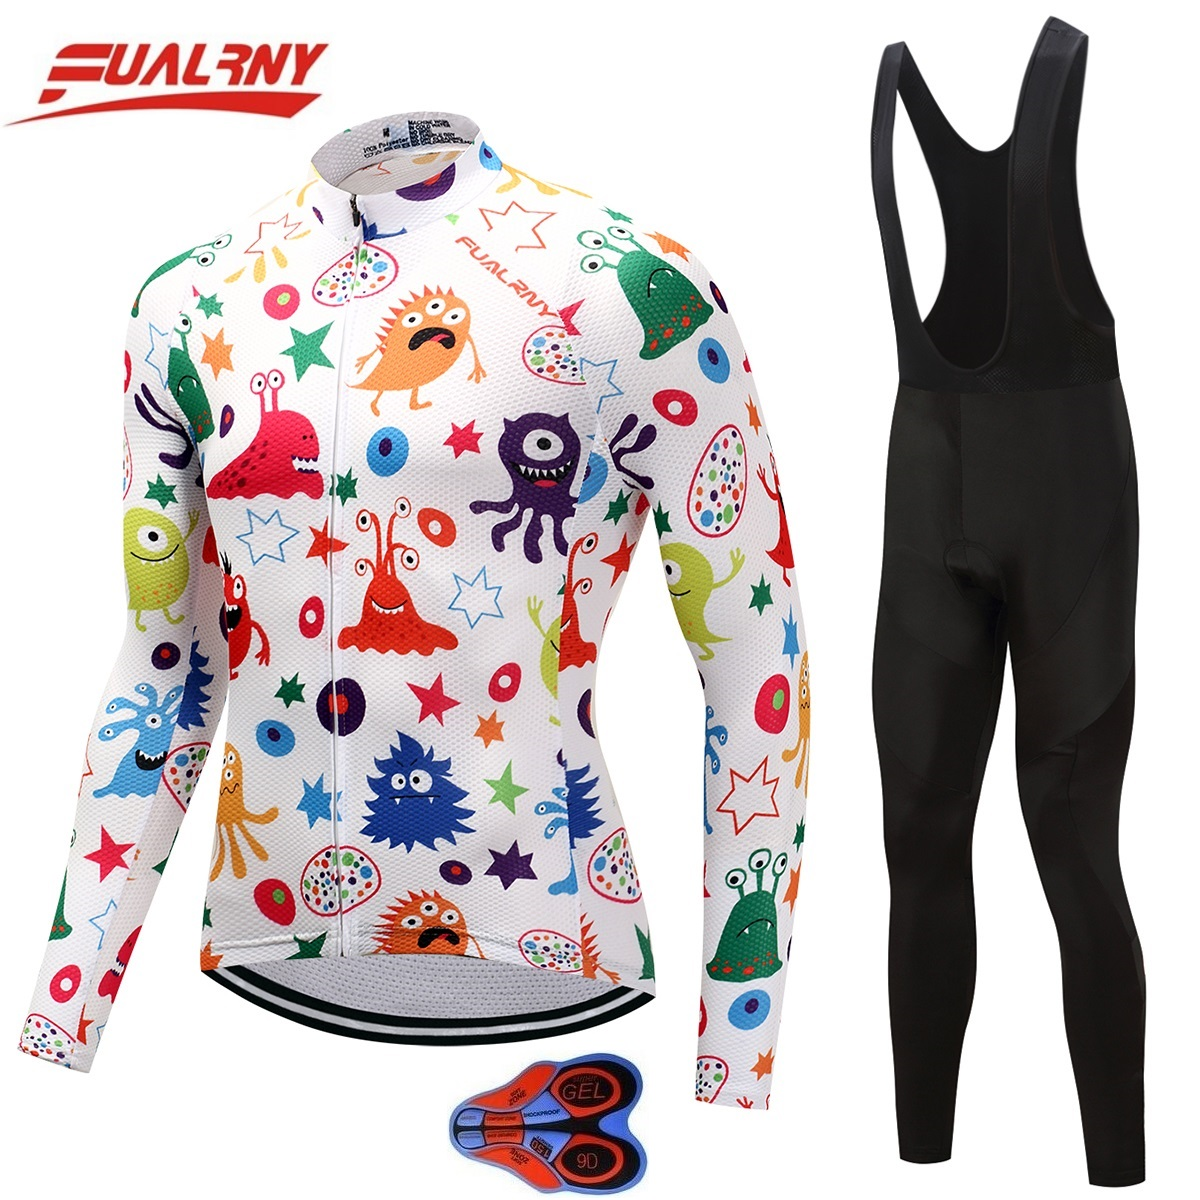 2018 Team FUALRNY Long sleeve Ropa Ciclismo Cycling Jersey sets 9D/Autumn Mountian Bicycle Clothing/MTB Bike Clothes Man Cartoon